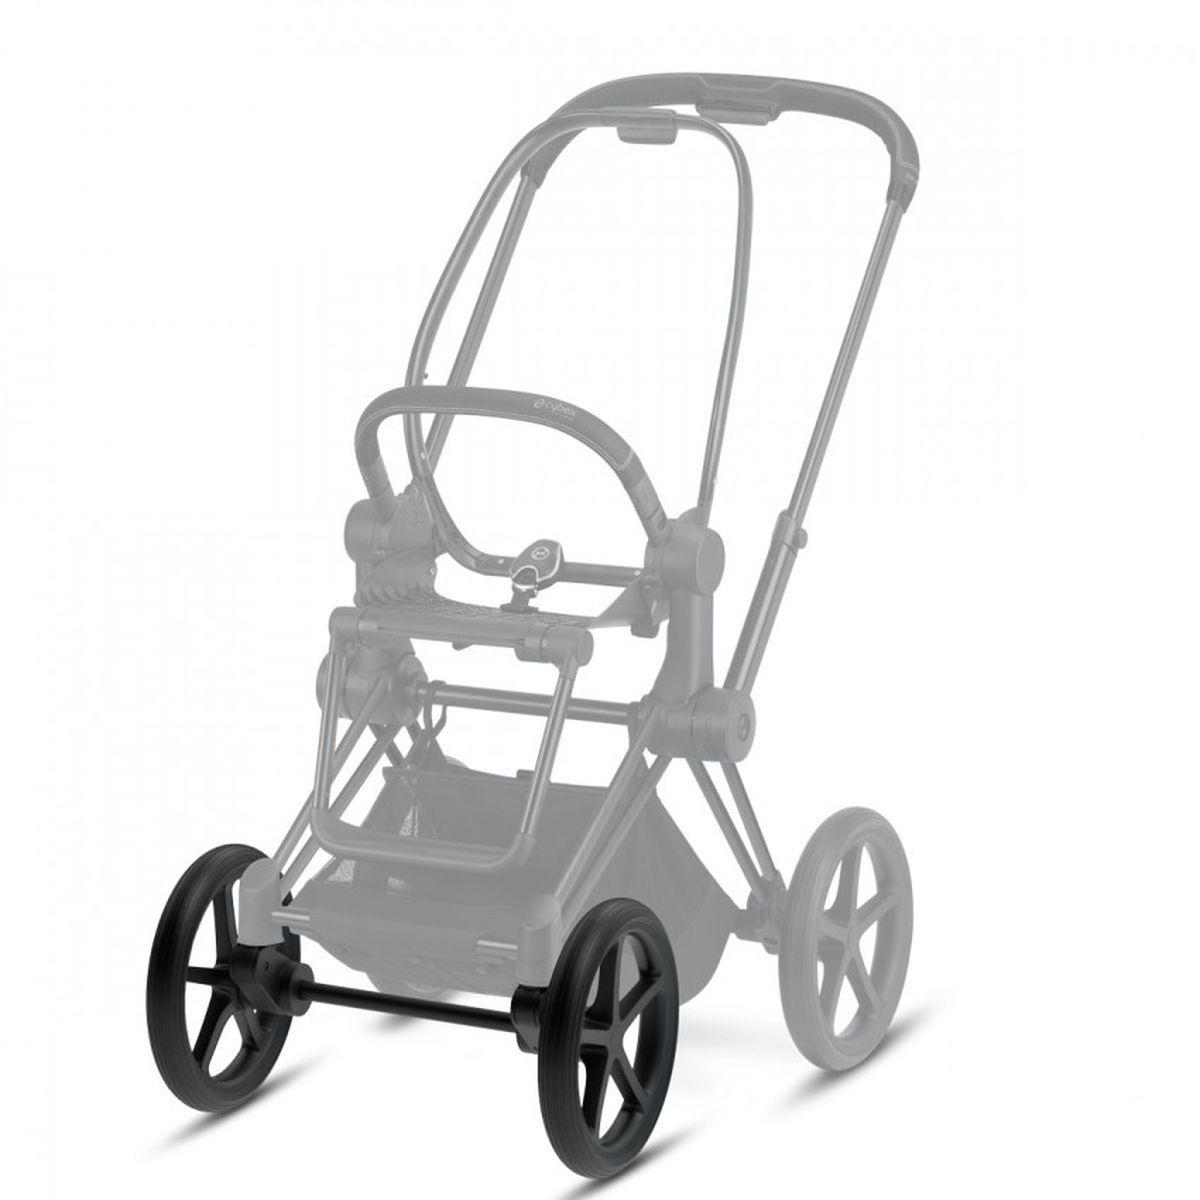 Set roues avant terrain difficile PRIAM Cybex matt black-black